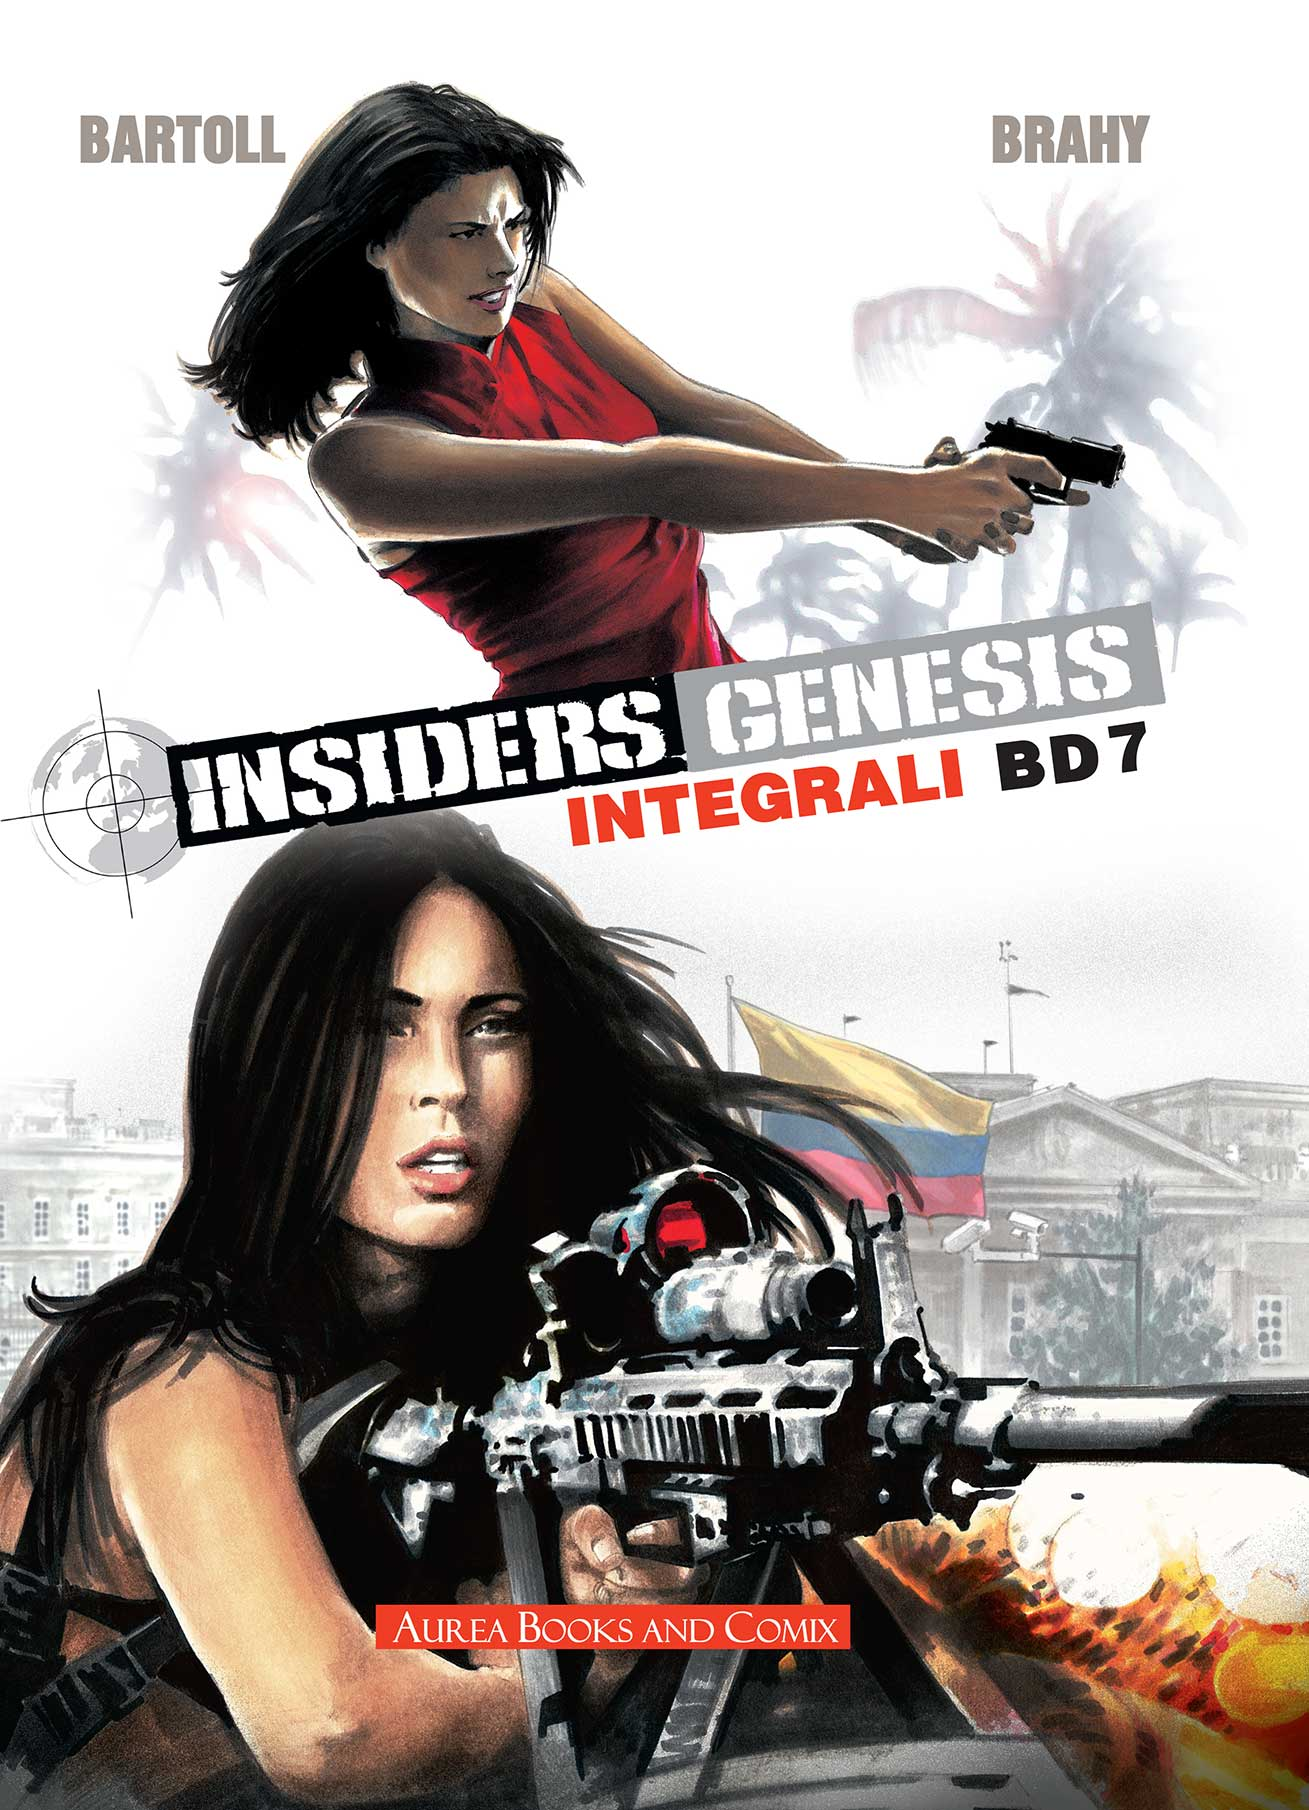 Integrali BD Insiders 7